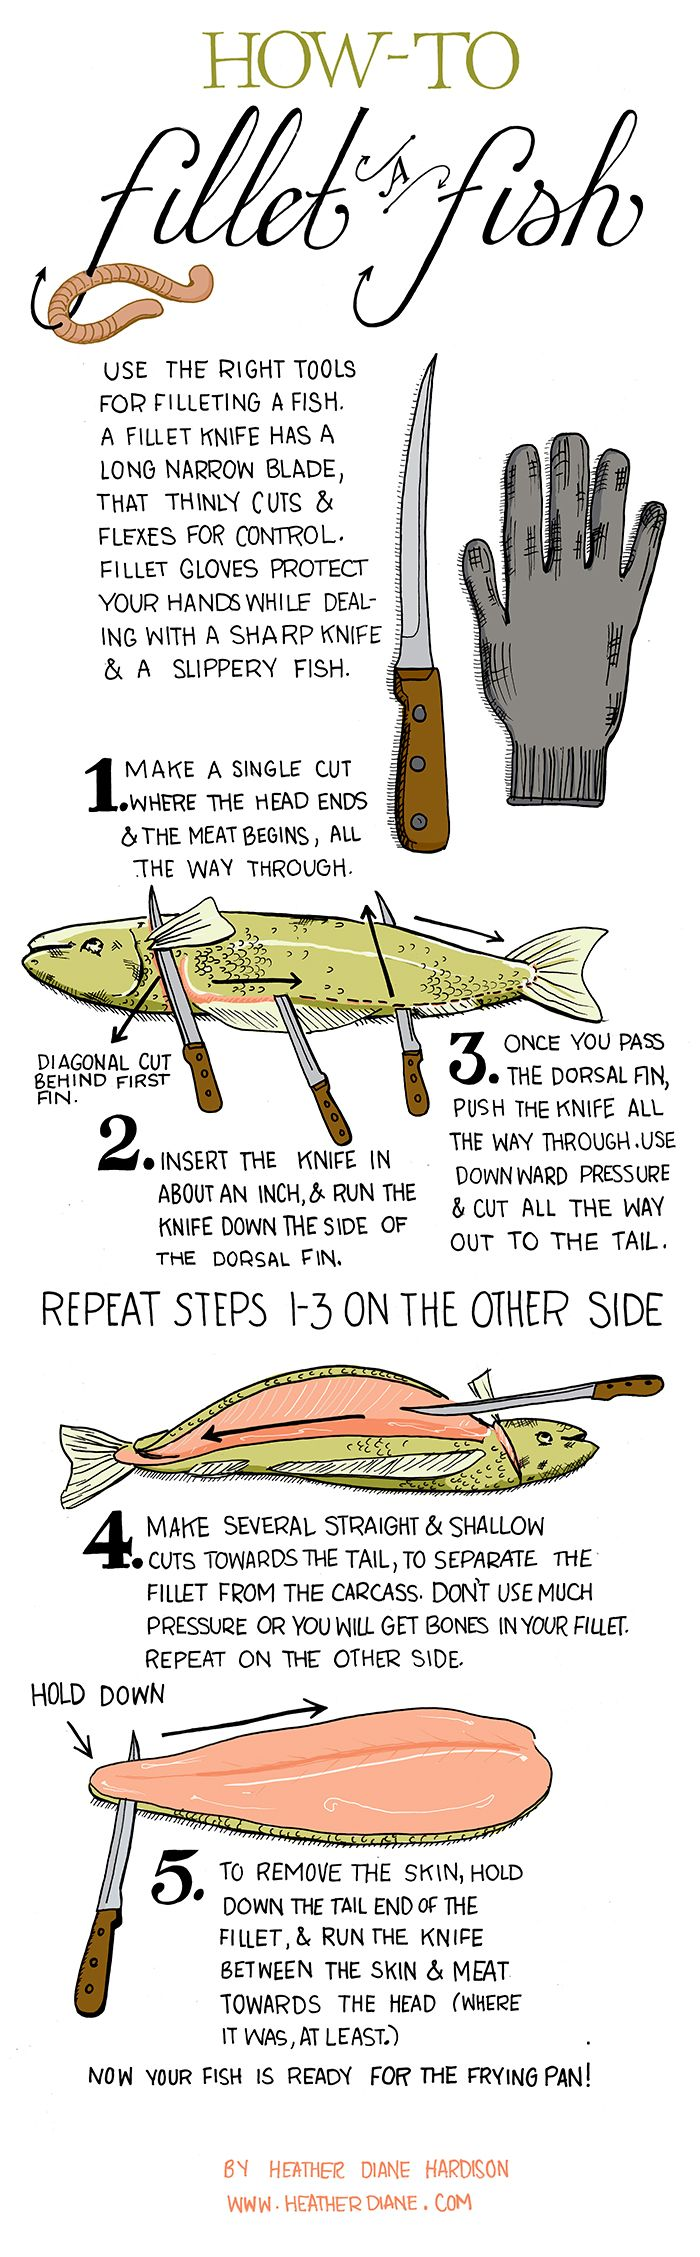 http://illustratedbites.files.wordpress.com/2013/08/filletafish_web.jpg